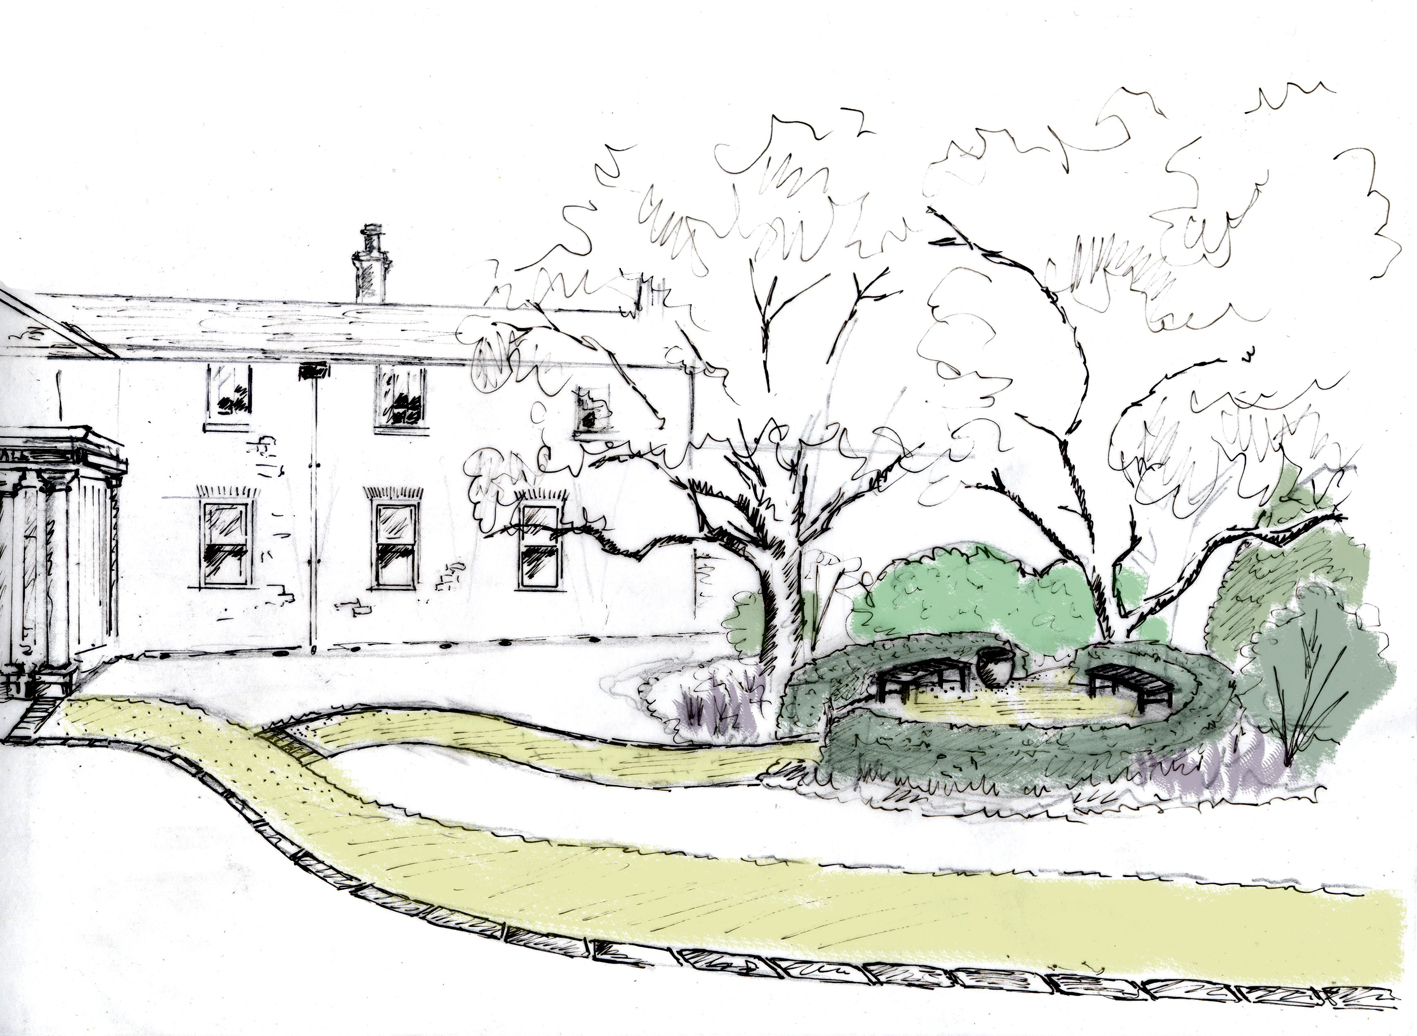 Eves & Lewis Landscape Design Concept for Whitworh Hall